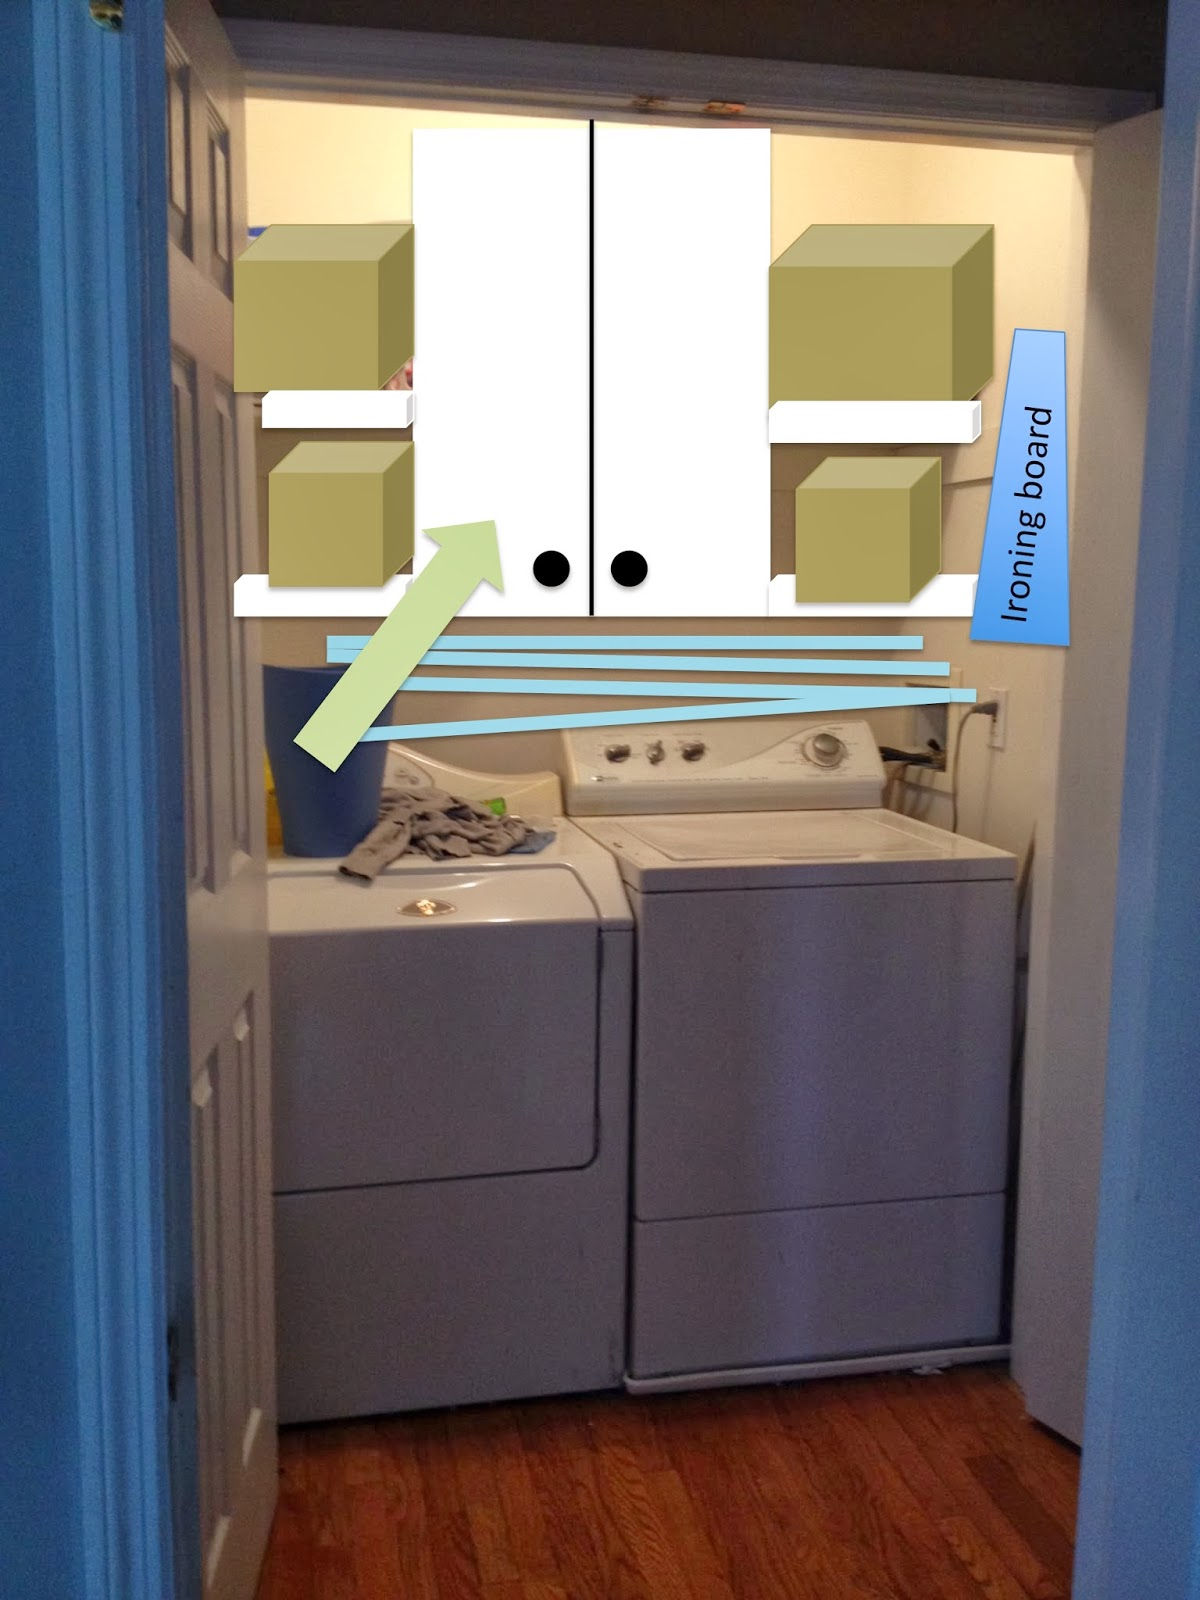 If You Remember My Original Laundry Closet Plan Was To Have The Cabinet  Centered In The Closet Over The Washer And Dryer.